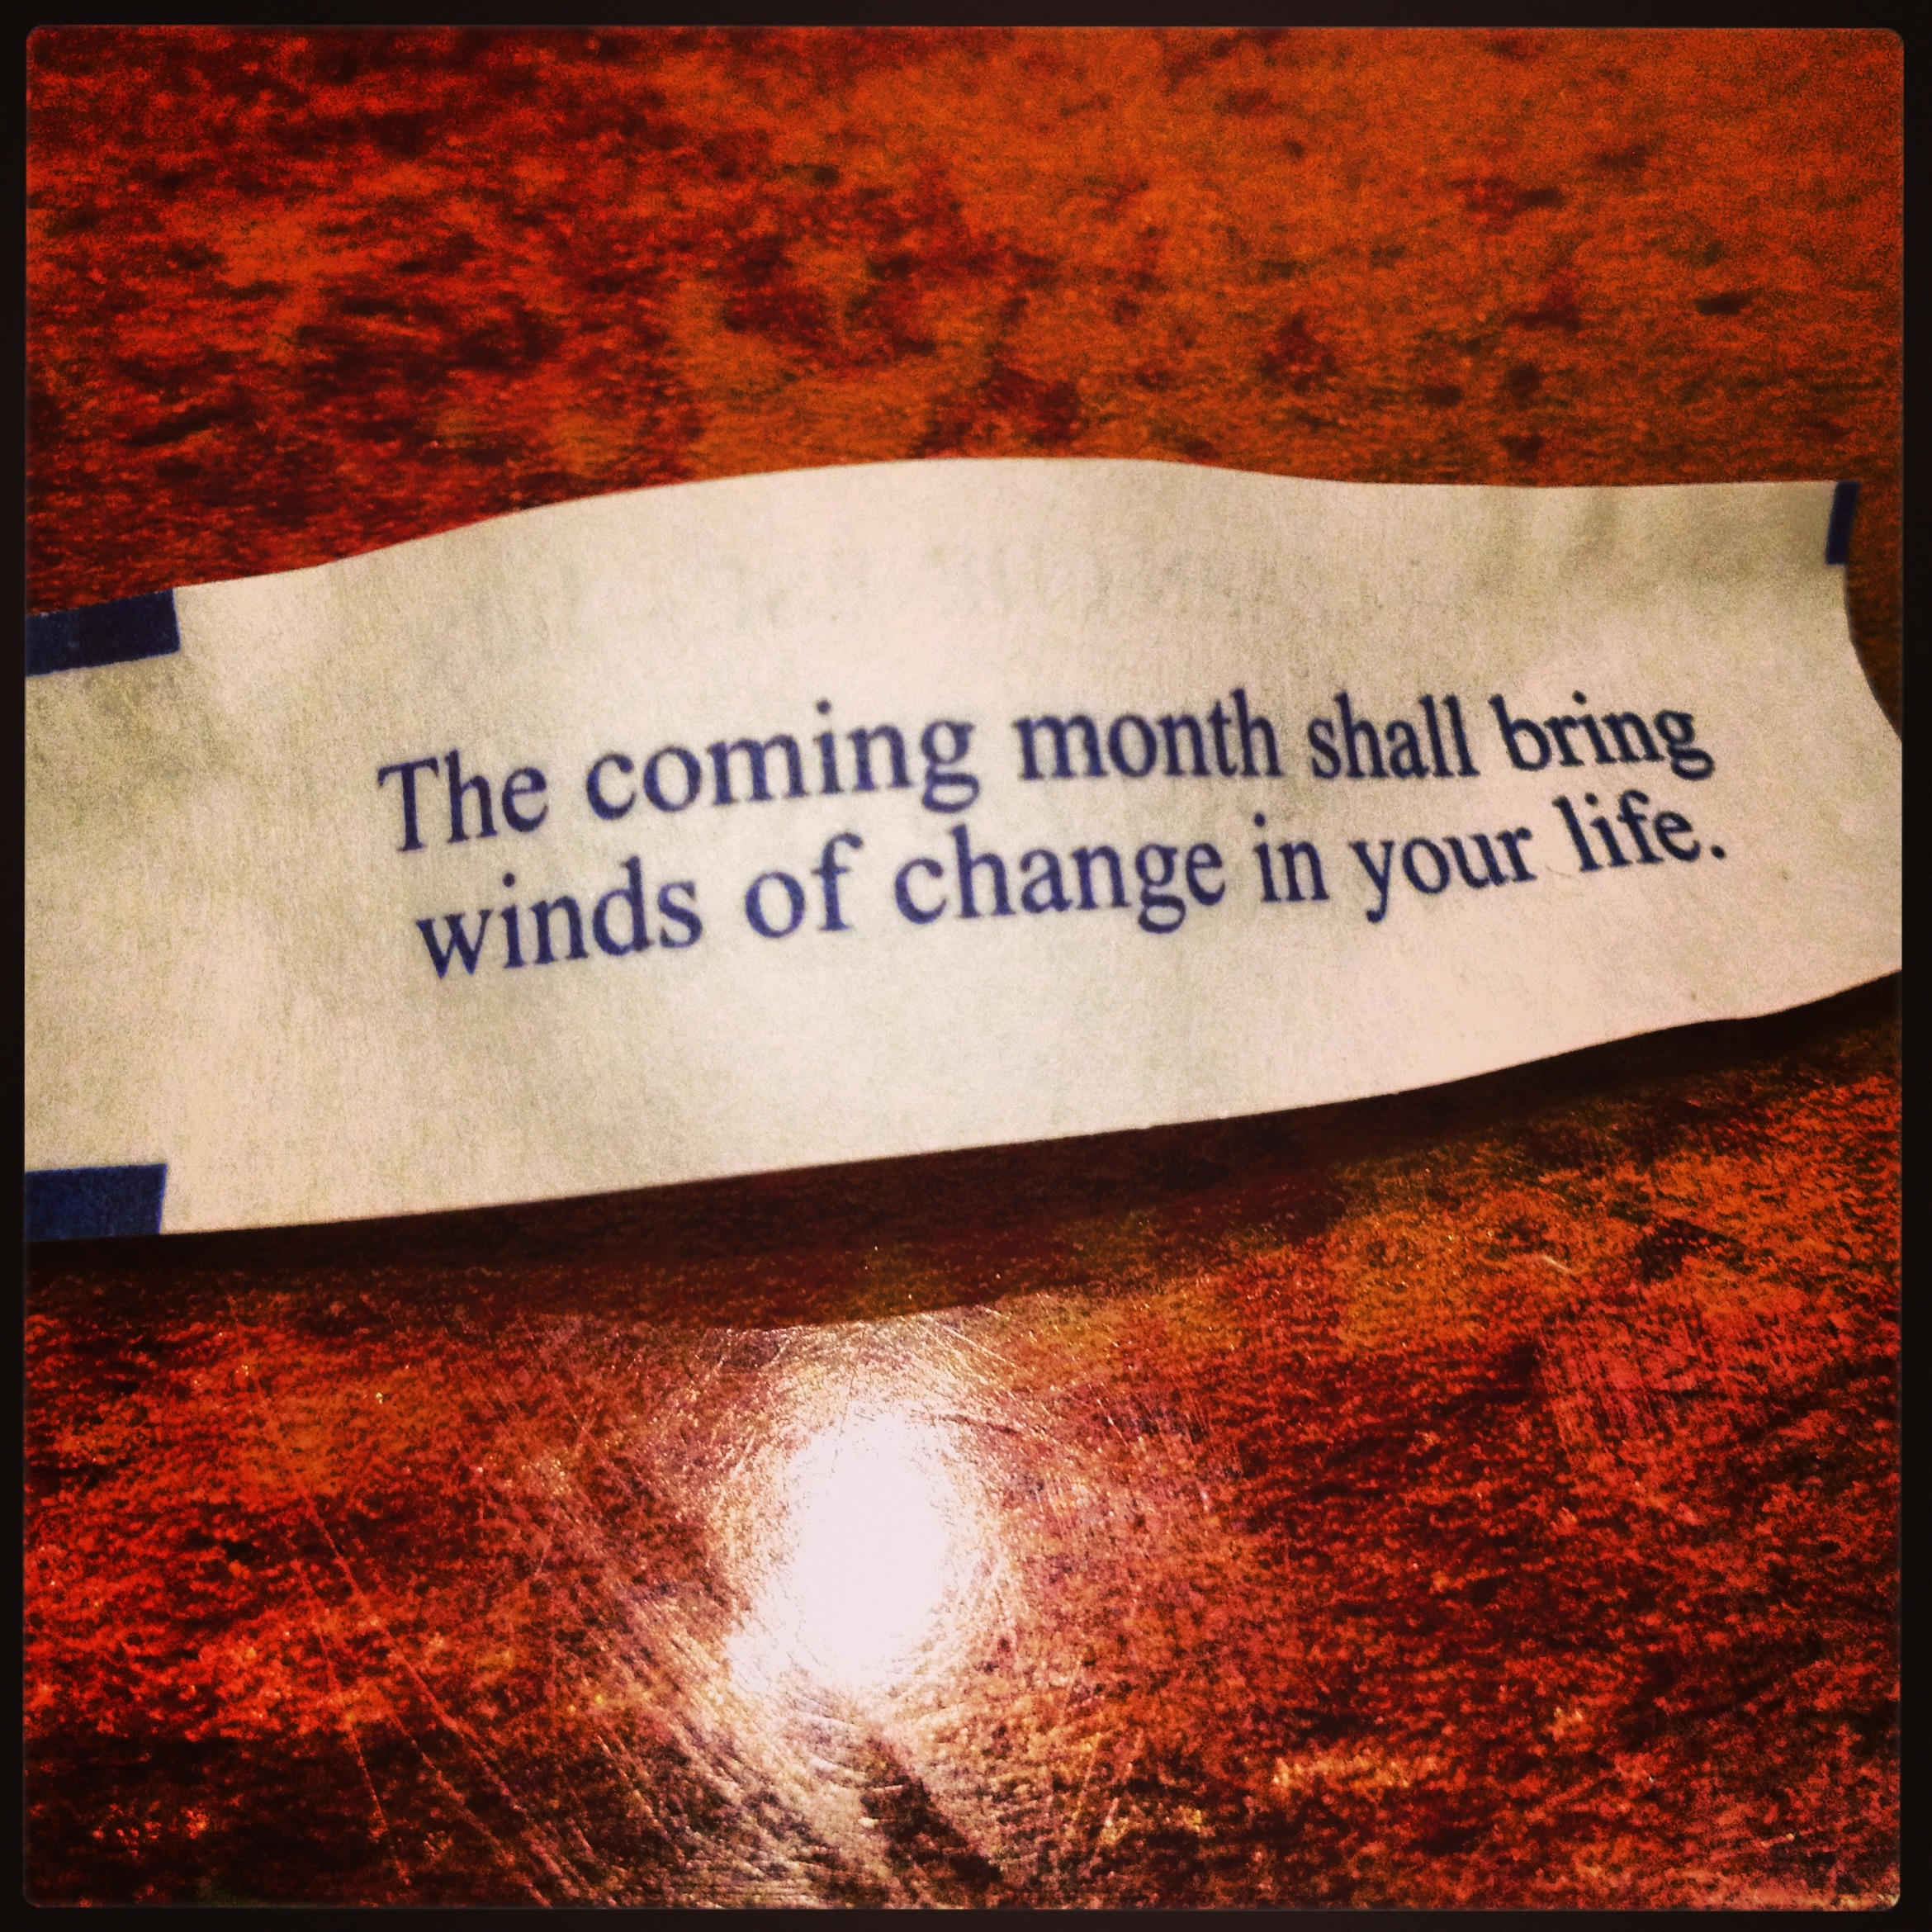 the-coming-month-shall-bring-winds-of-change-in-your-life